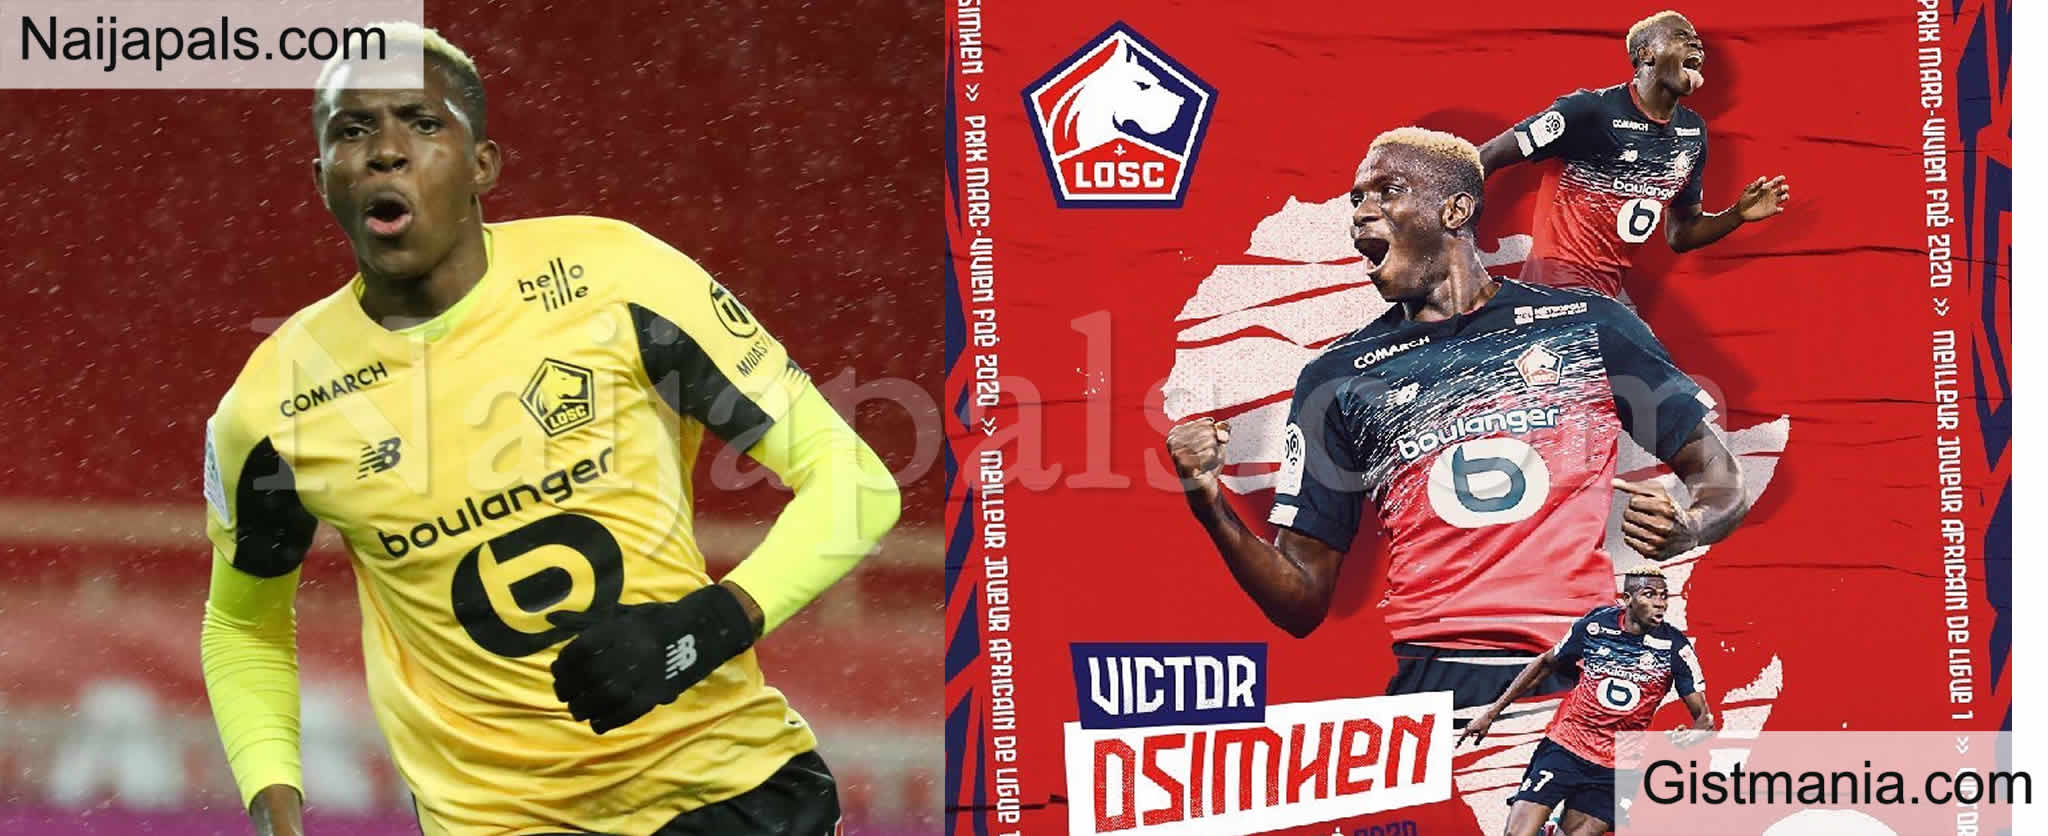 <img alt='.' class='lazyload' data-src='https://img.gistmania.com/emot/thumbs_up.gif' /> <b>Serie A Names Nigeria's Victor Osimhen as The Fastest Player in The League</b>